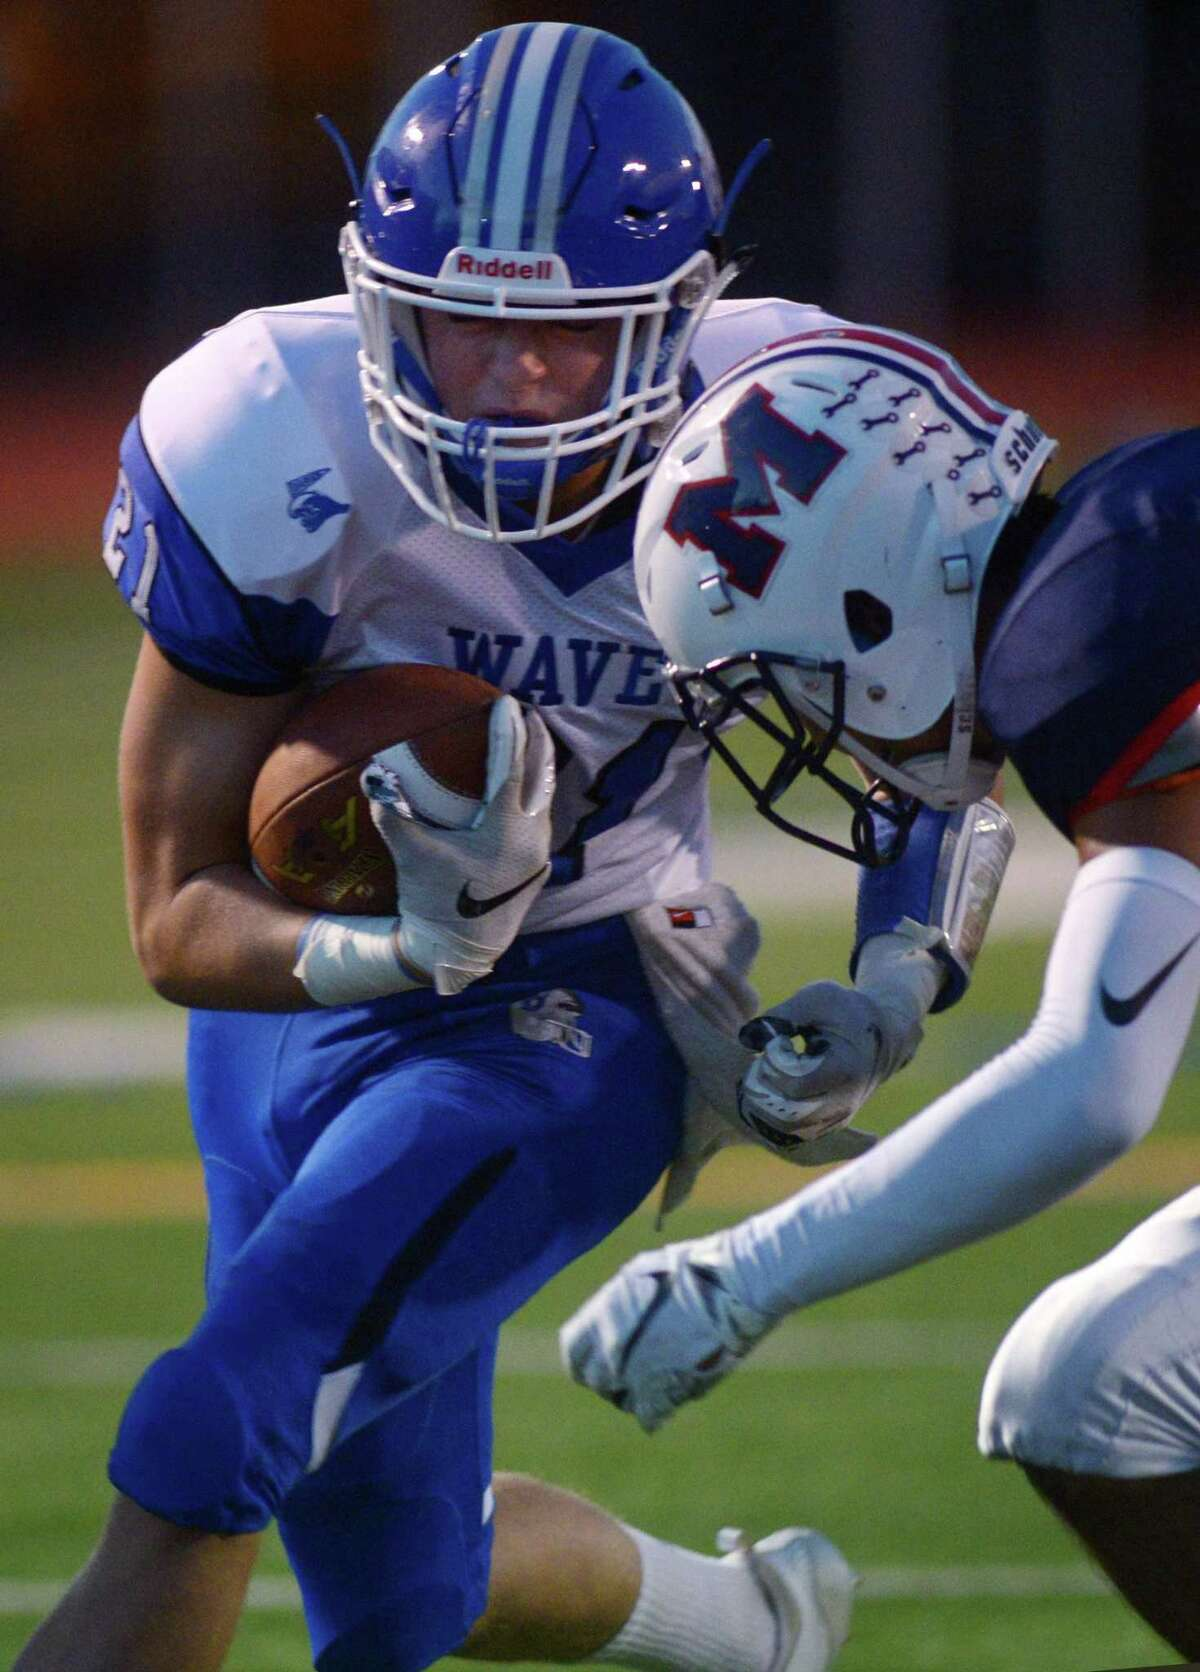 Darien High School #21 Will Kirby runs for the goal line past Senator #7 Andrew Trujillo as the Blue Wave takes on Brien MacMahon High School Friday, September 14, 2018, in Norwalk, Conn.